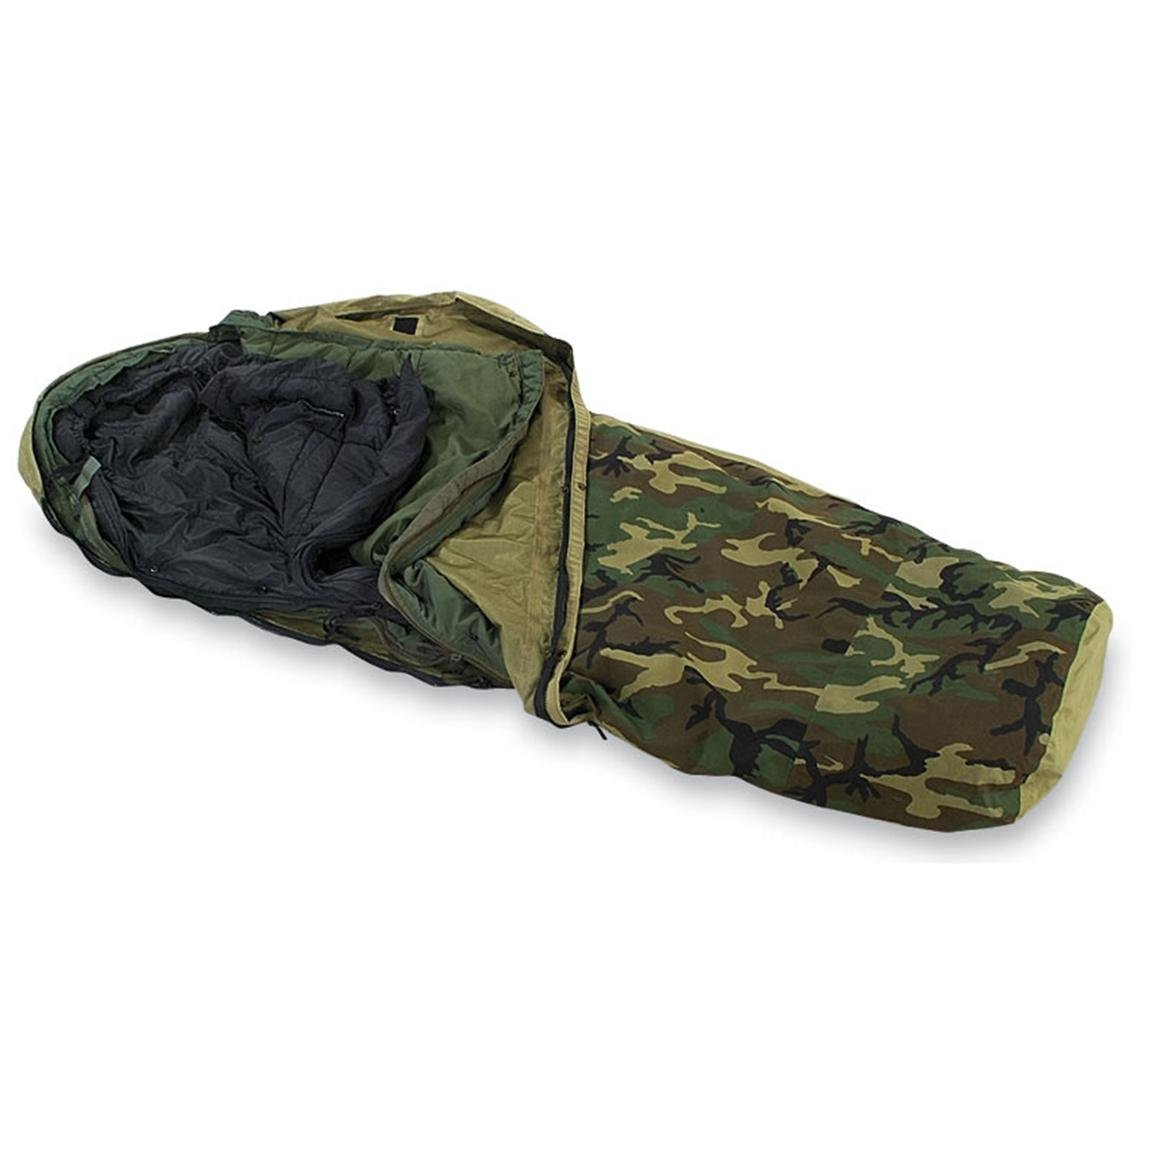 Military Outdoor Clothing Previously Issued U.S. G.I. Modular Sleeping Bag System (4-Piece) by Military Outdoor Clothing